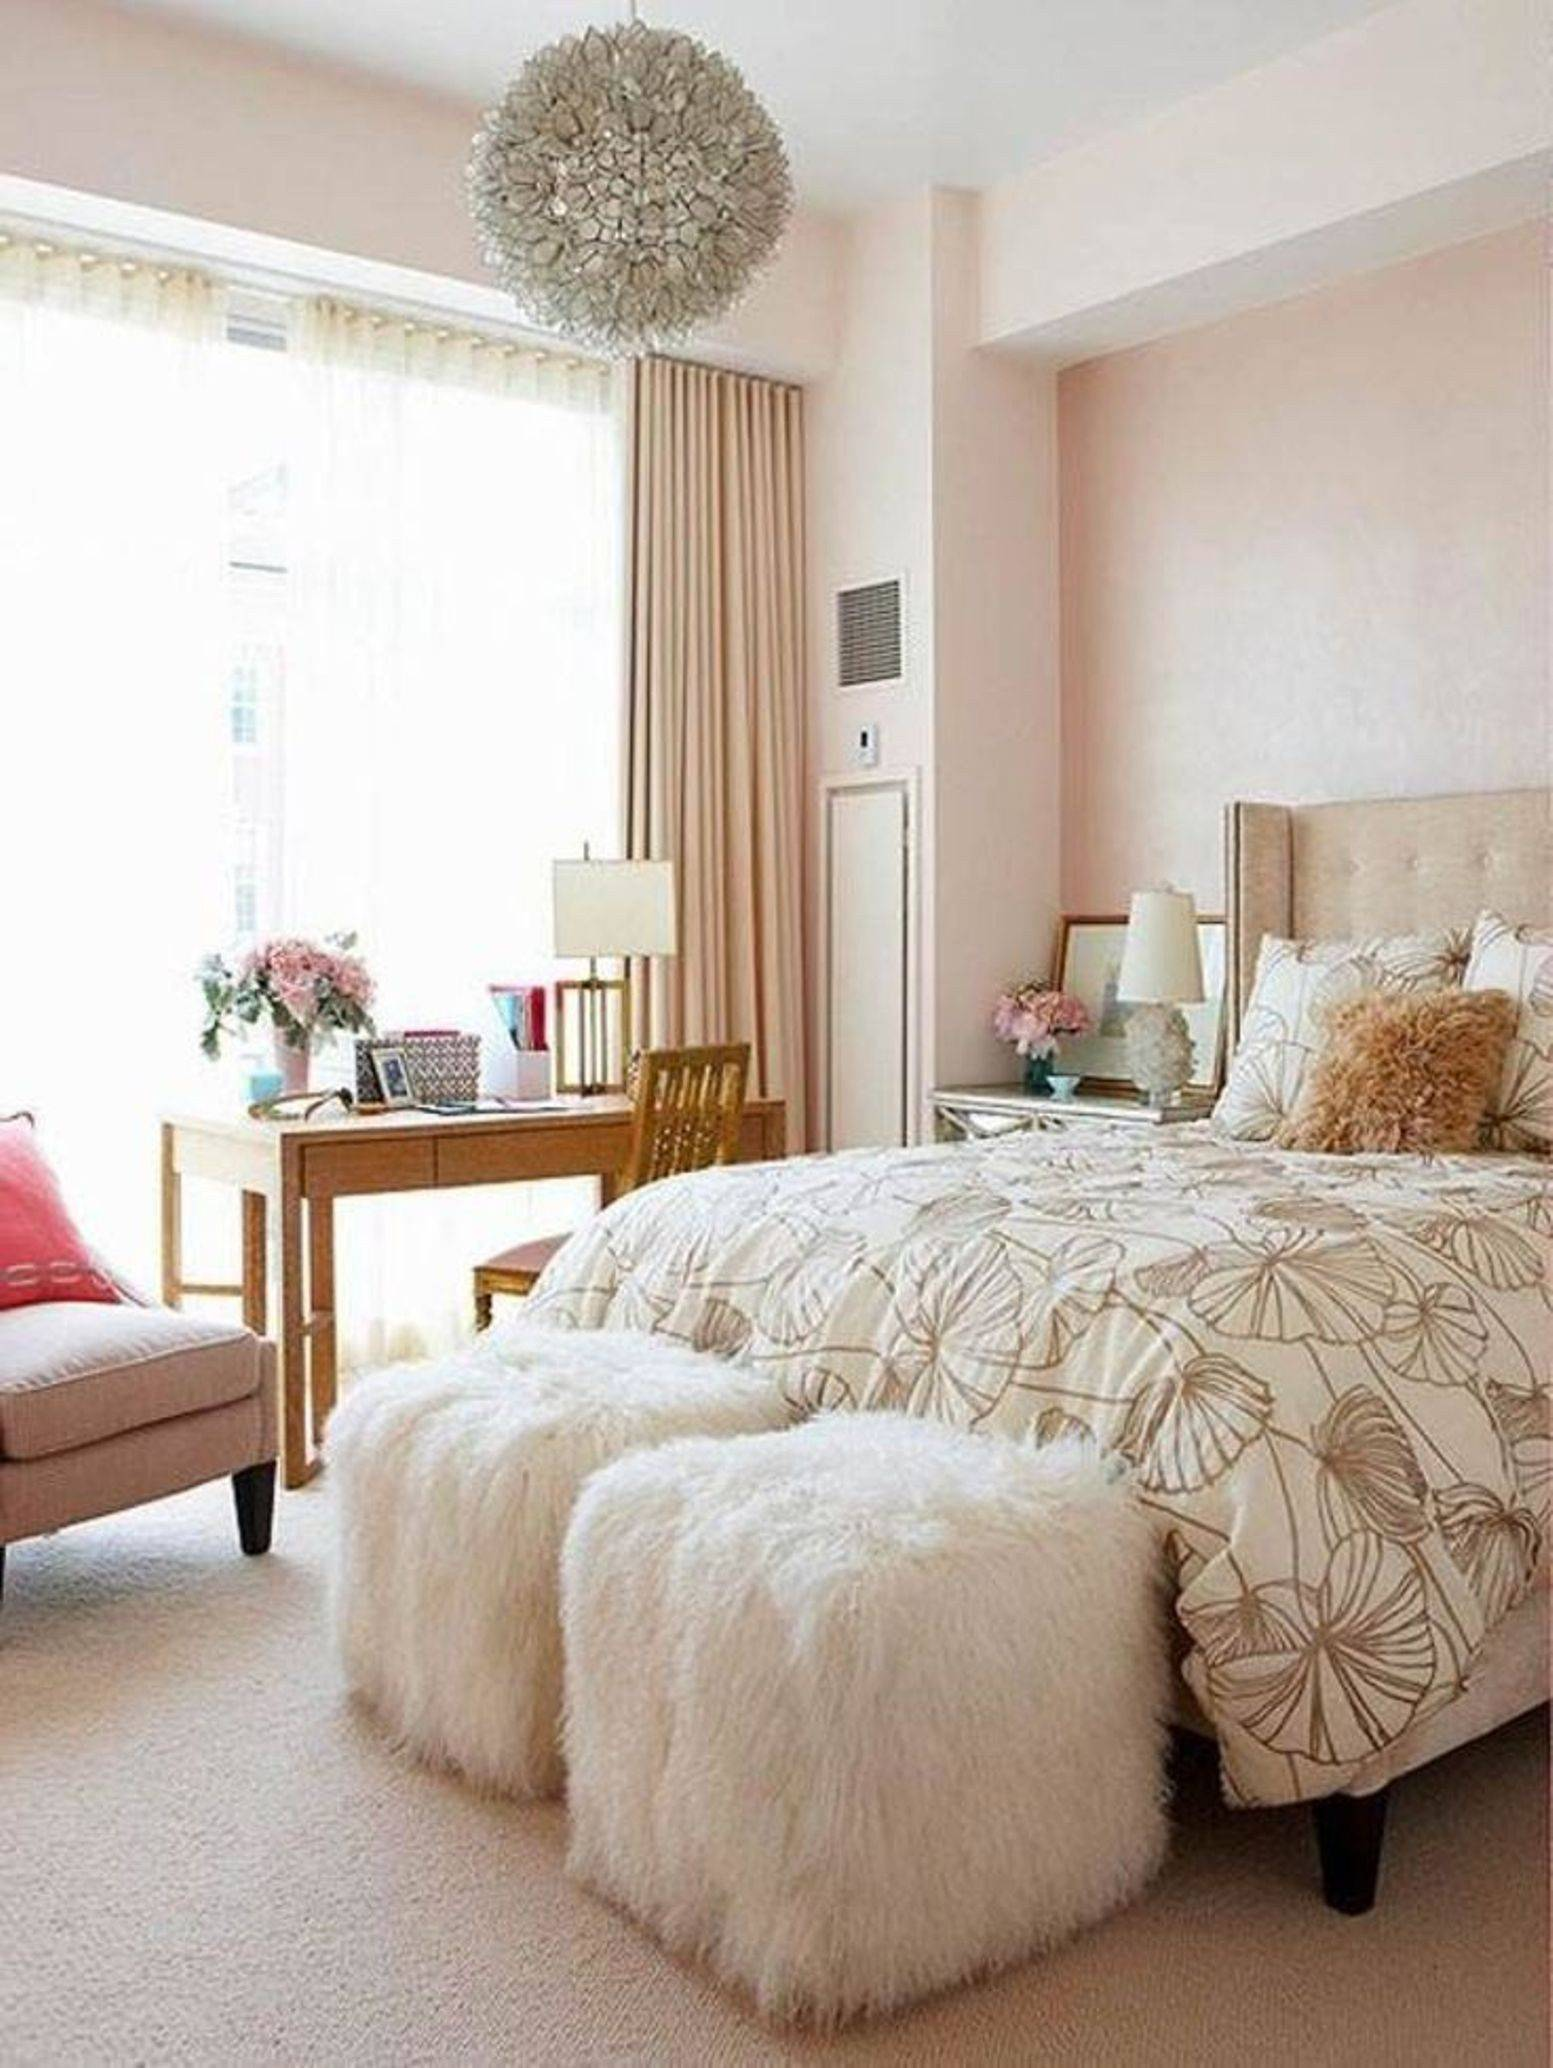 Cool Bedroom Designs Luxury Pink and Grey Bedroom Decor Inspirational Bedroom Cool Gray